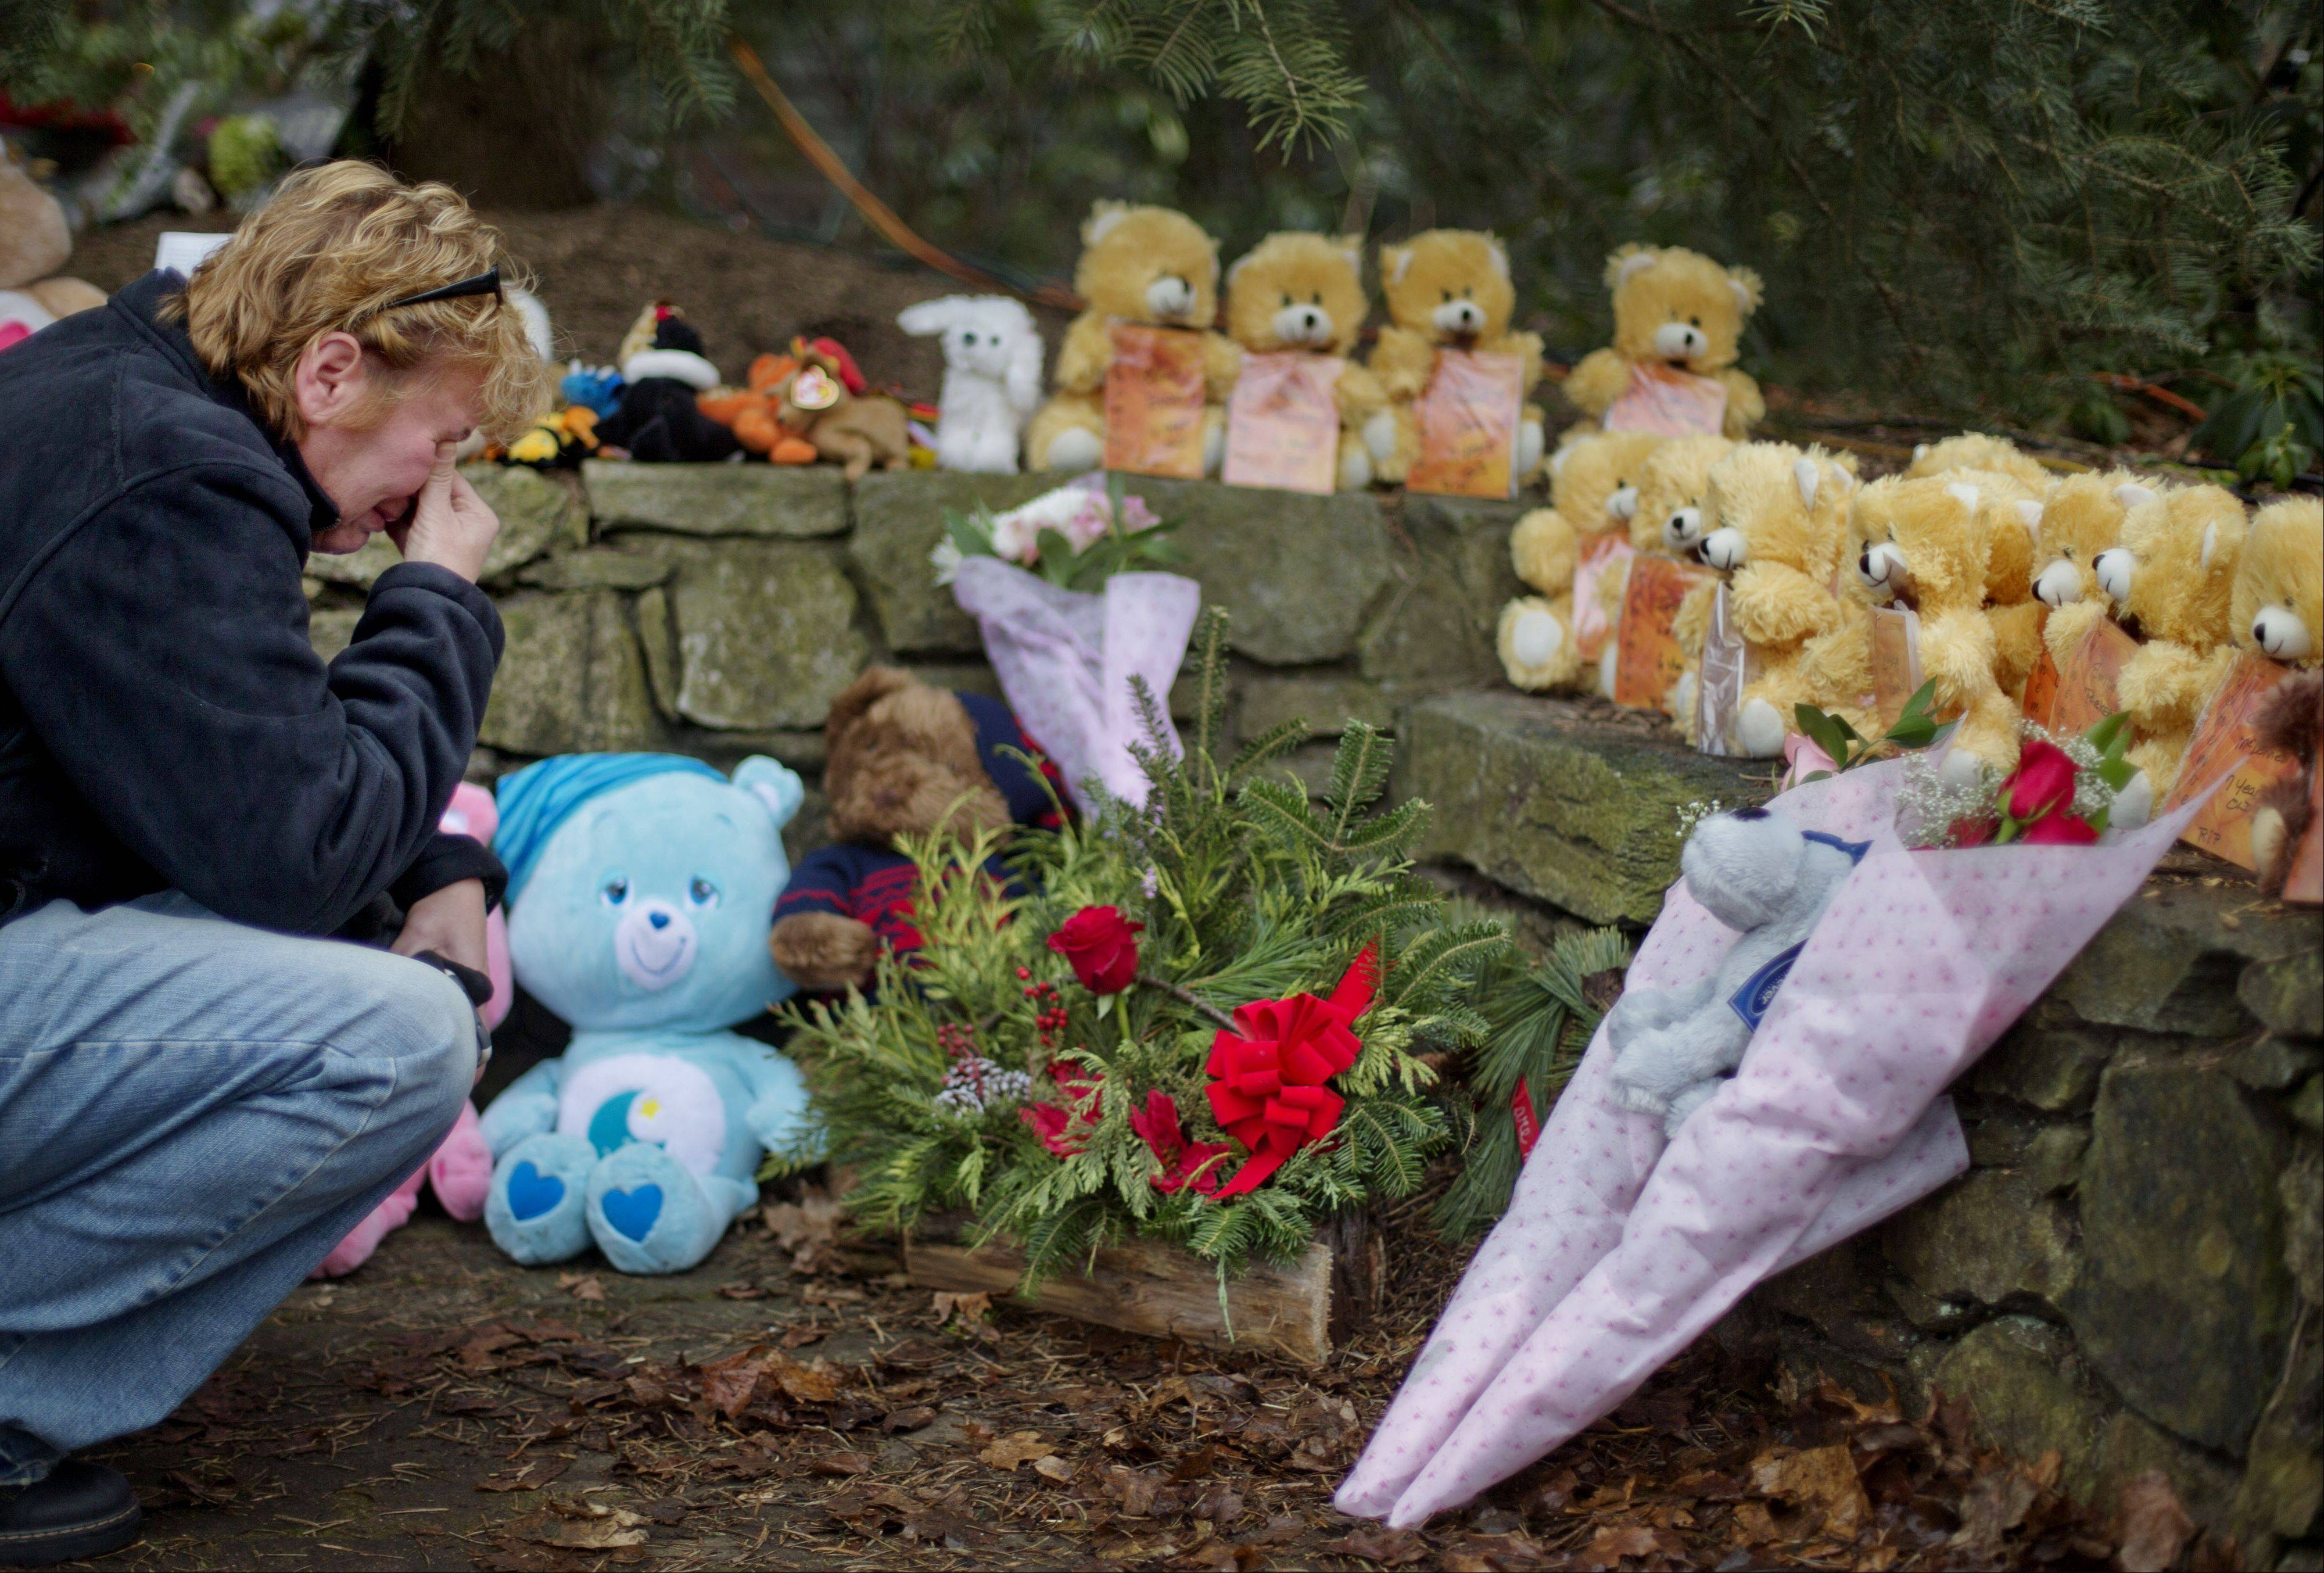 Cheryl Girardi, of Middletown, Conn., kneels beside 26 teddy bears, each representing a victim of the Sandy Hook Elementary School shooting, at a sidewalk memorial Sunday in Newtown, Conn.